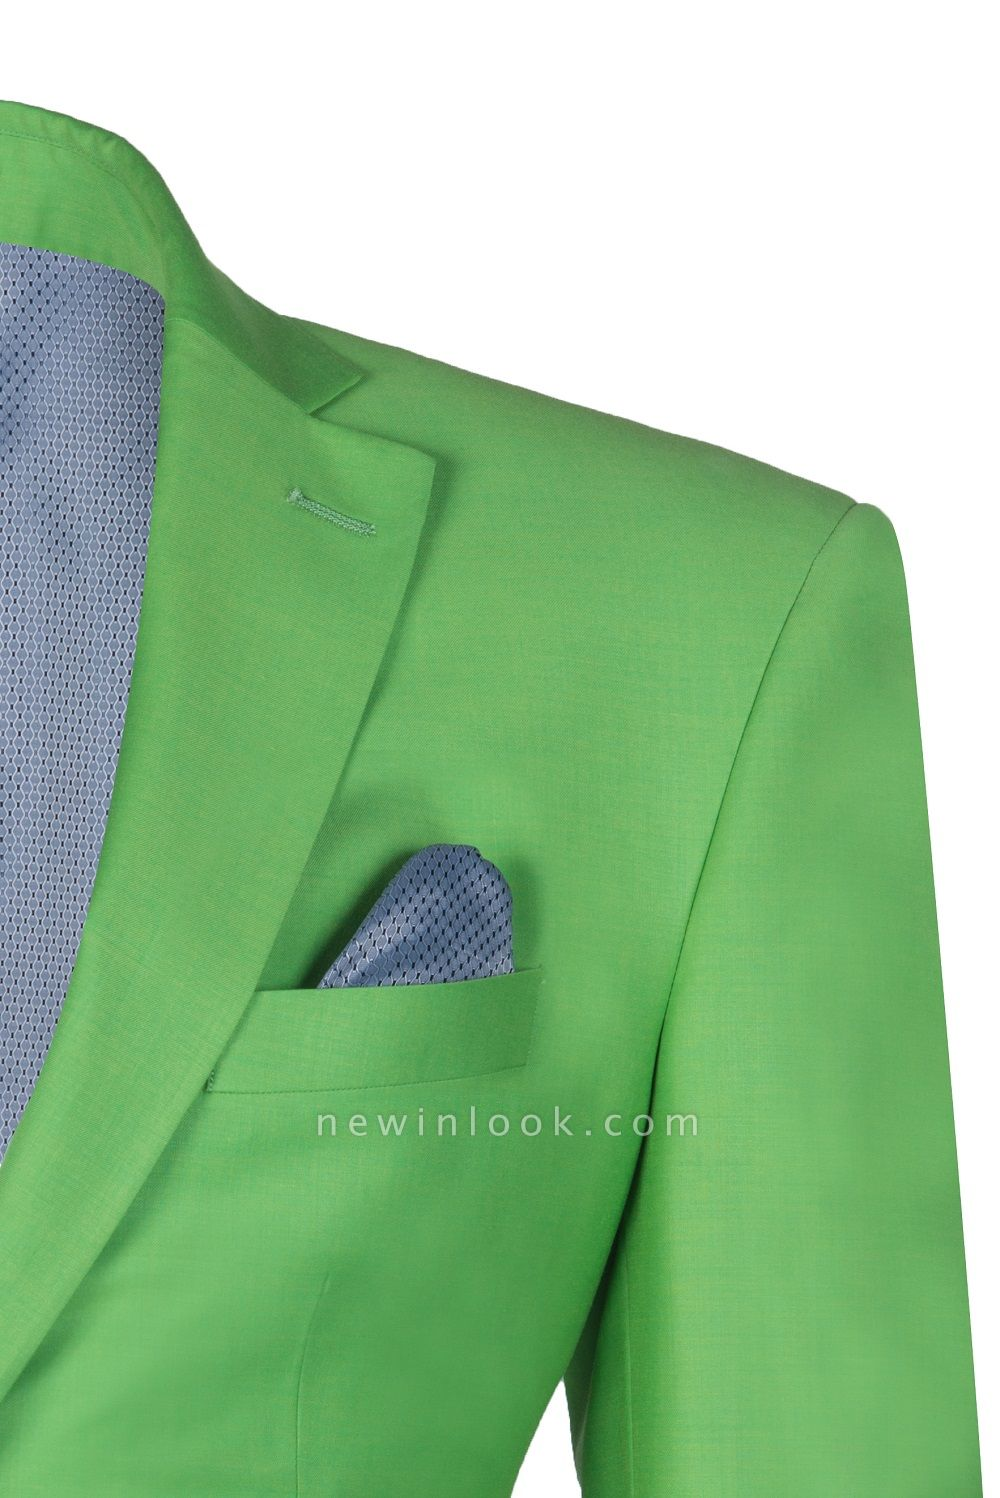 Popular Stylish Design Jade Single Breasted Back Vent Peak Lapel | Chambelanes tuxedos for my quince